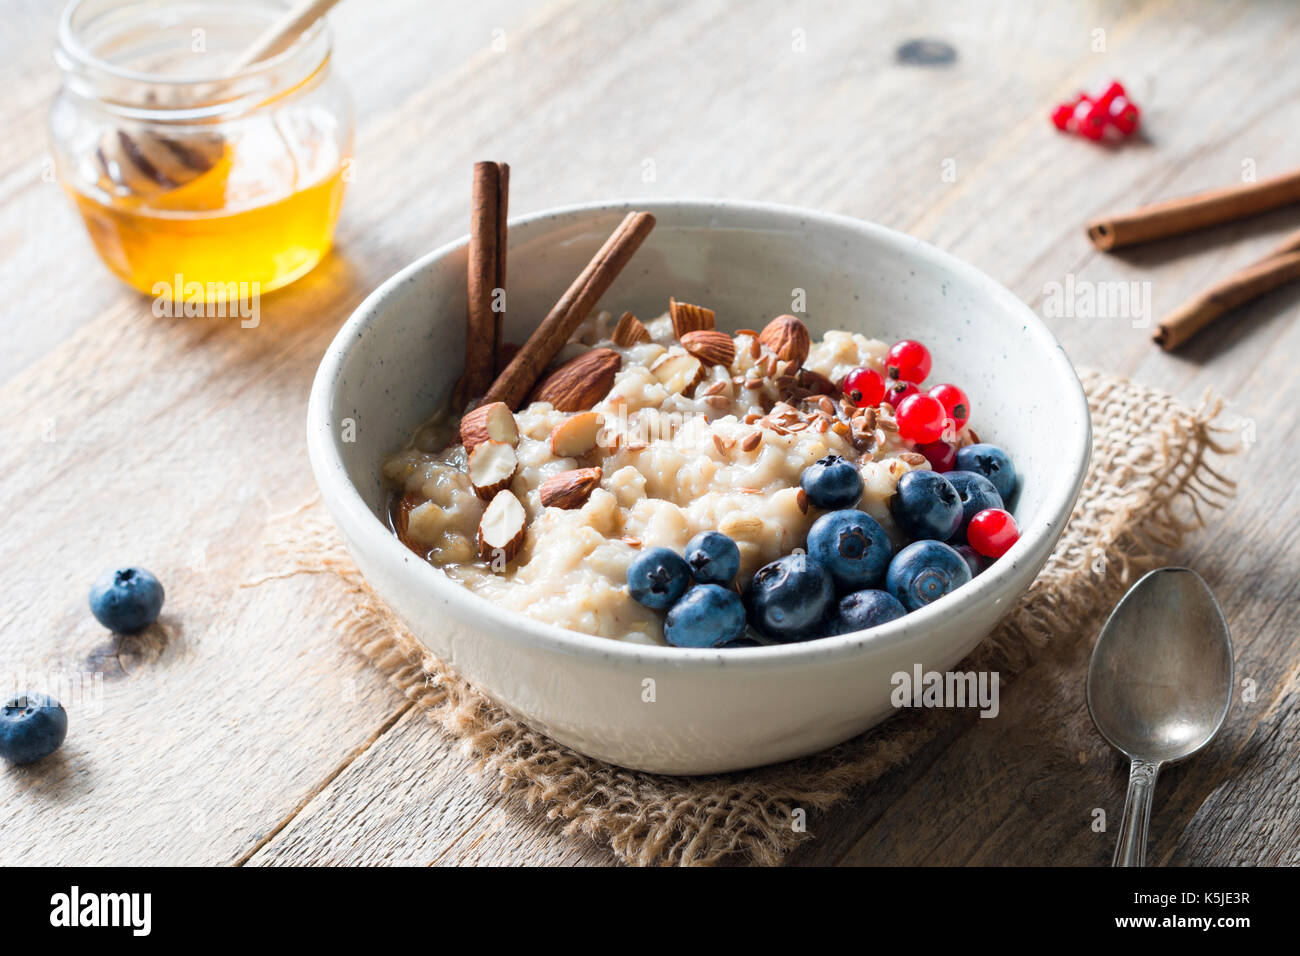 Oatmeal porridge with blueberries, almonds, cinnamon, honey, linseeds and red currants in bowl. Super food for healthy nutritious breakfast - Stock Image